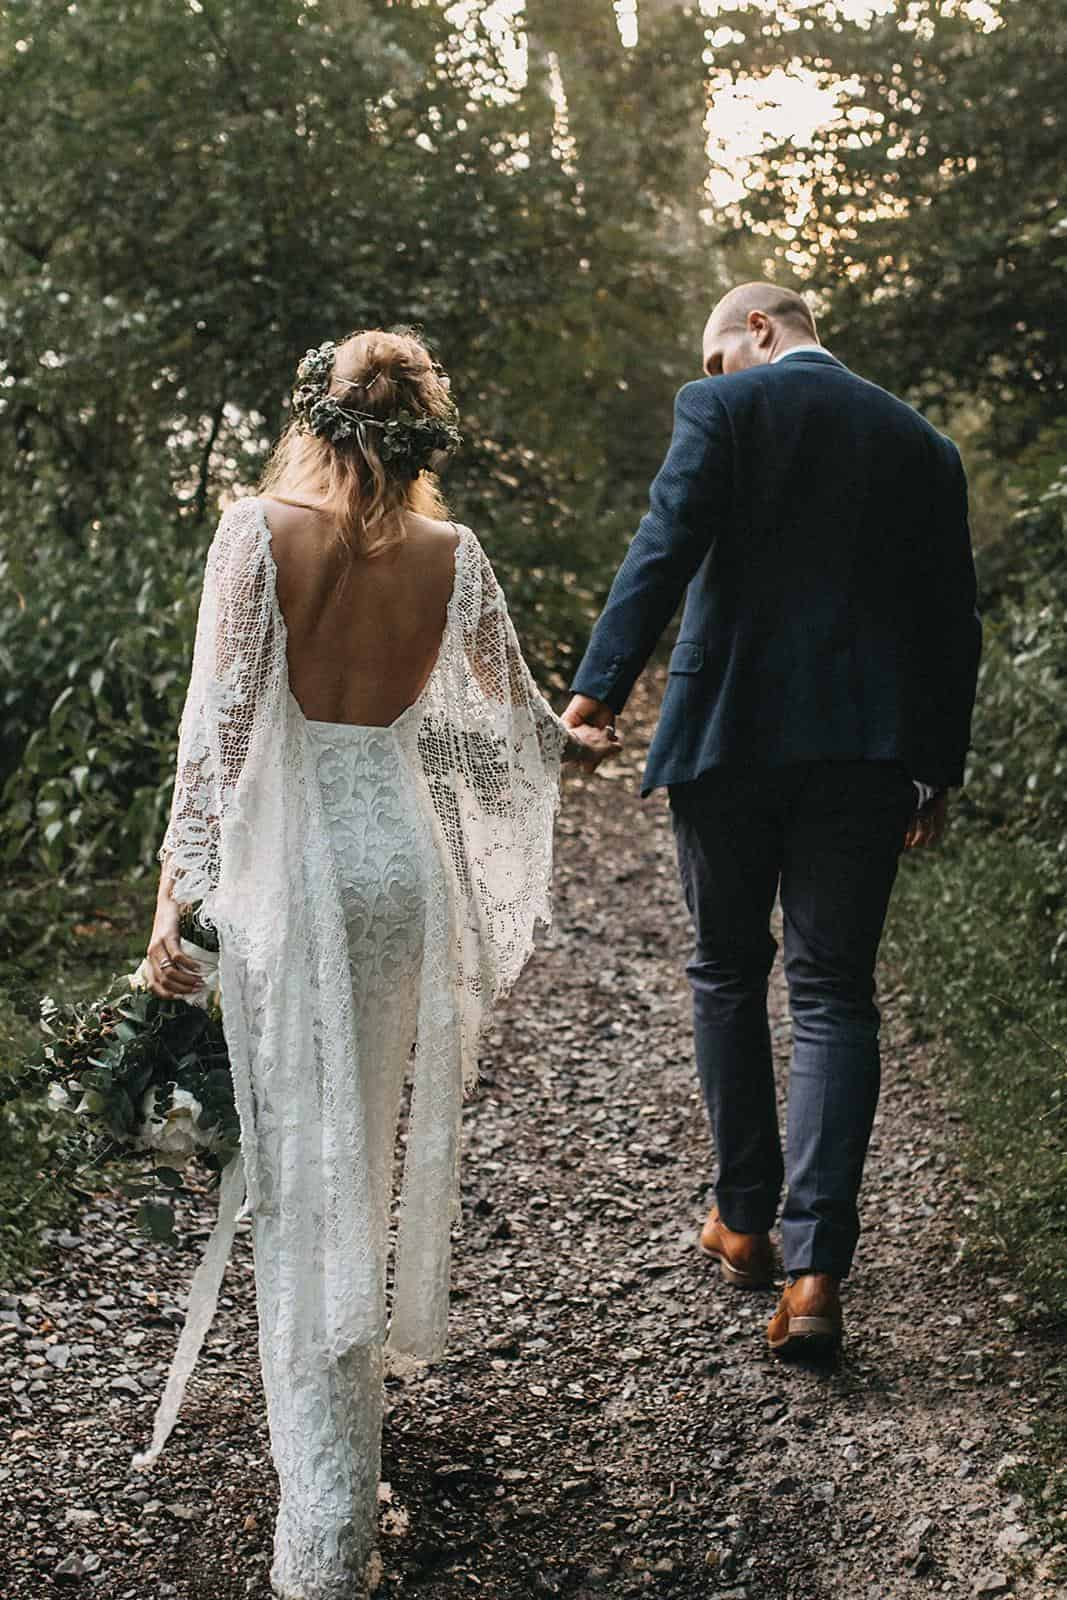 Bohemian Wedding Dresses Inspiration French Lace Gown Handmade by Grace Loves Lace Verdelle 2.0